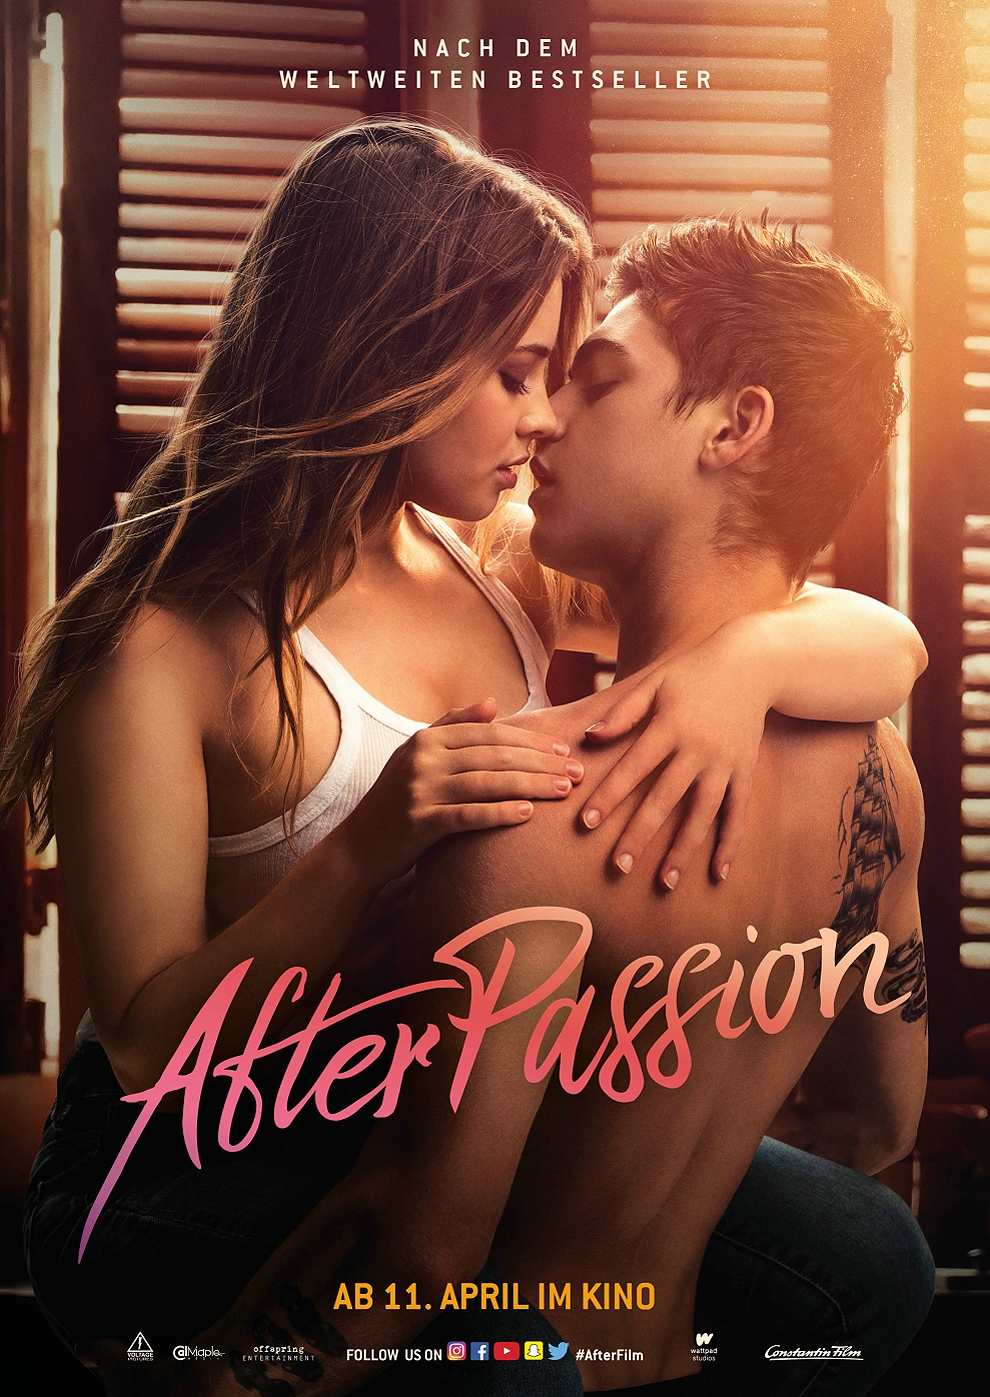 After Passion (Poster)